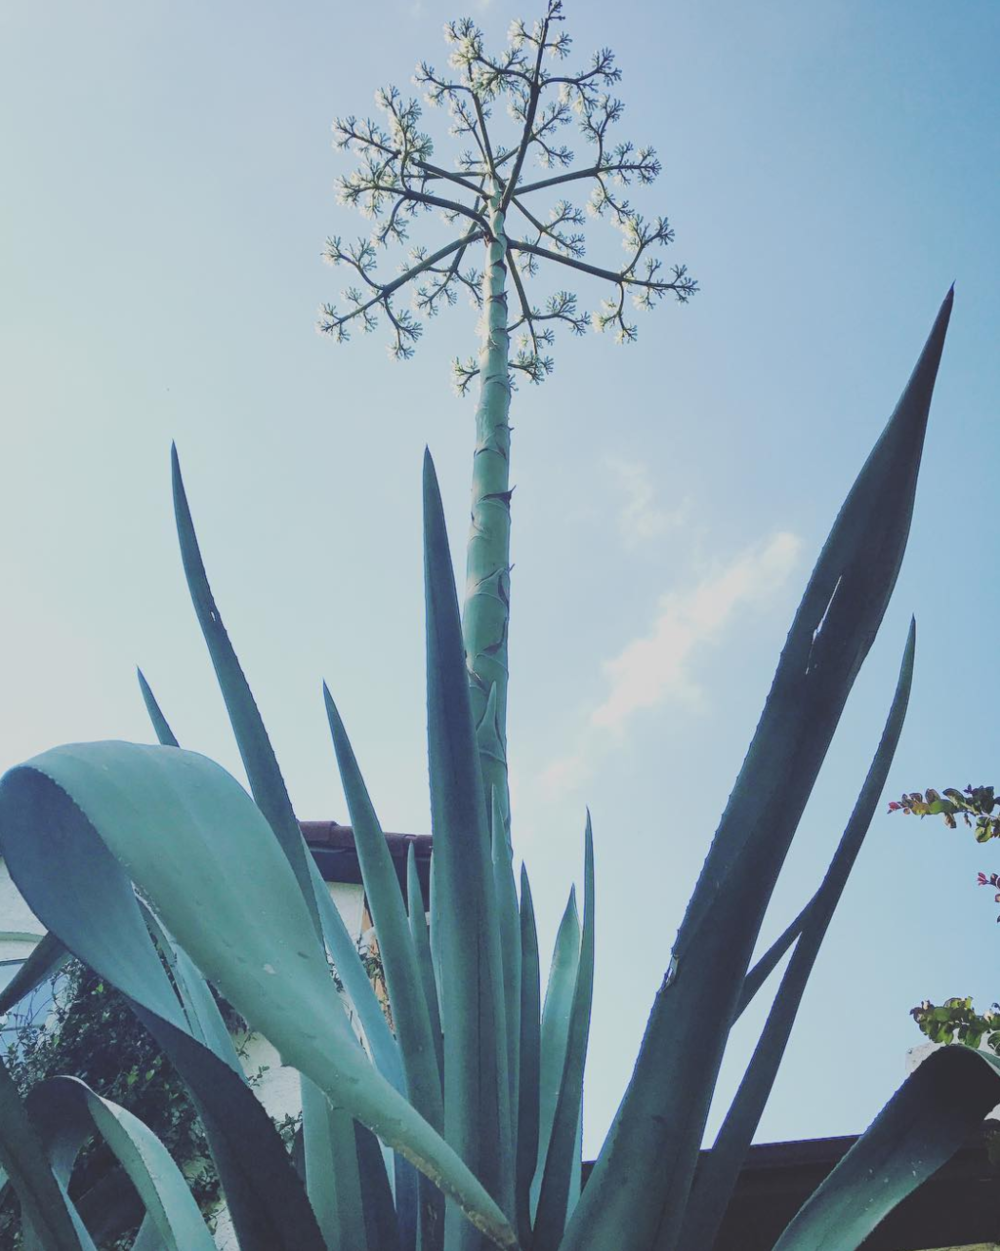 @lifeofahasserd and a blooming century plant (AKA agave americana).